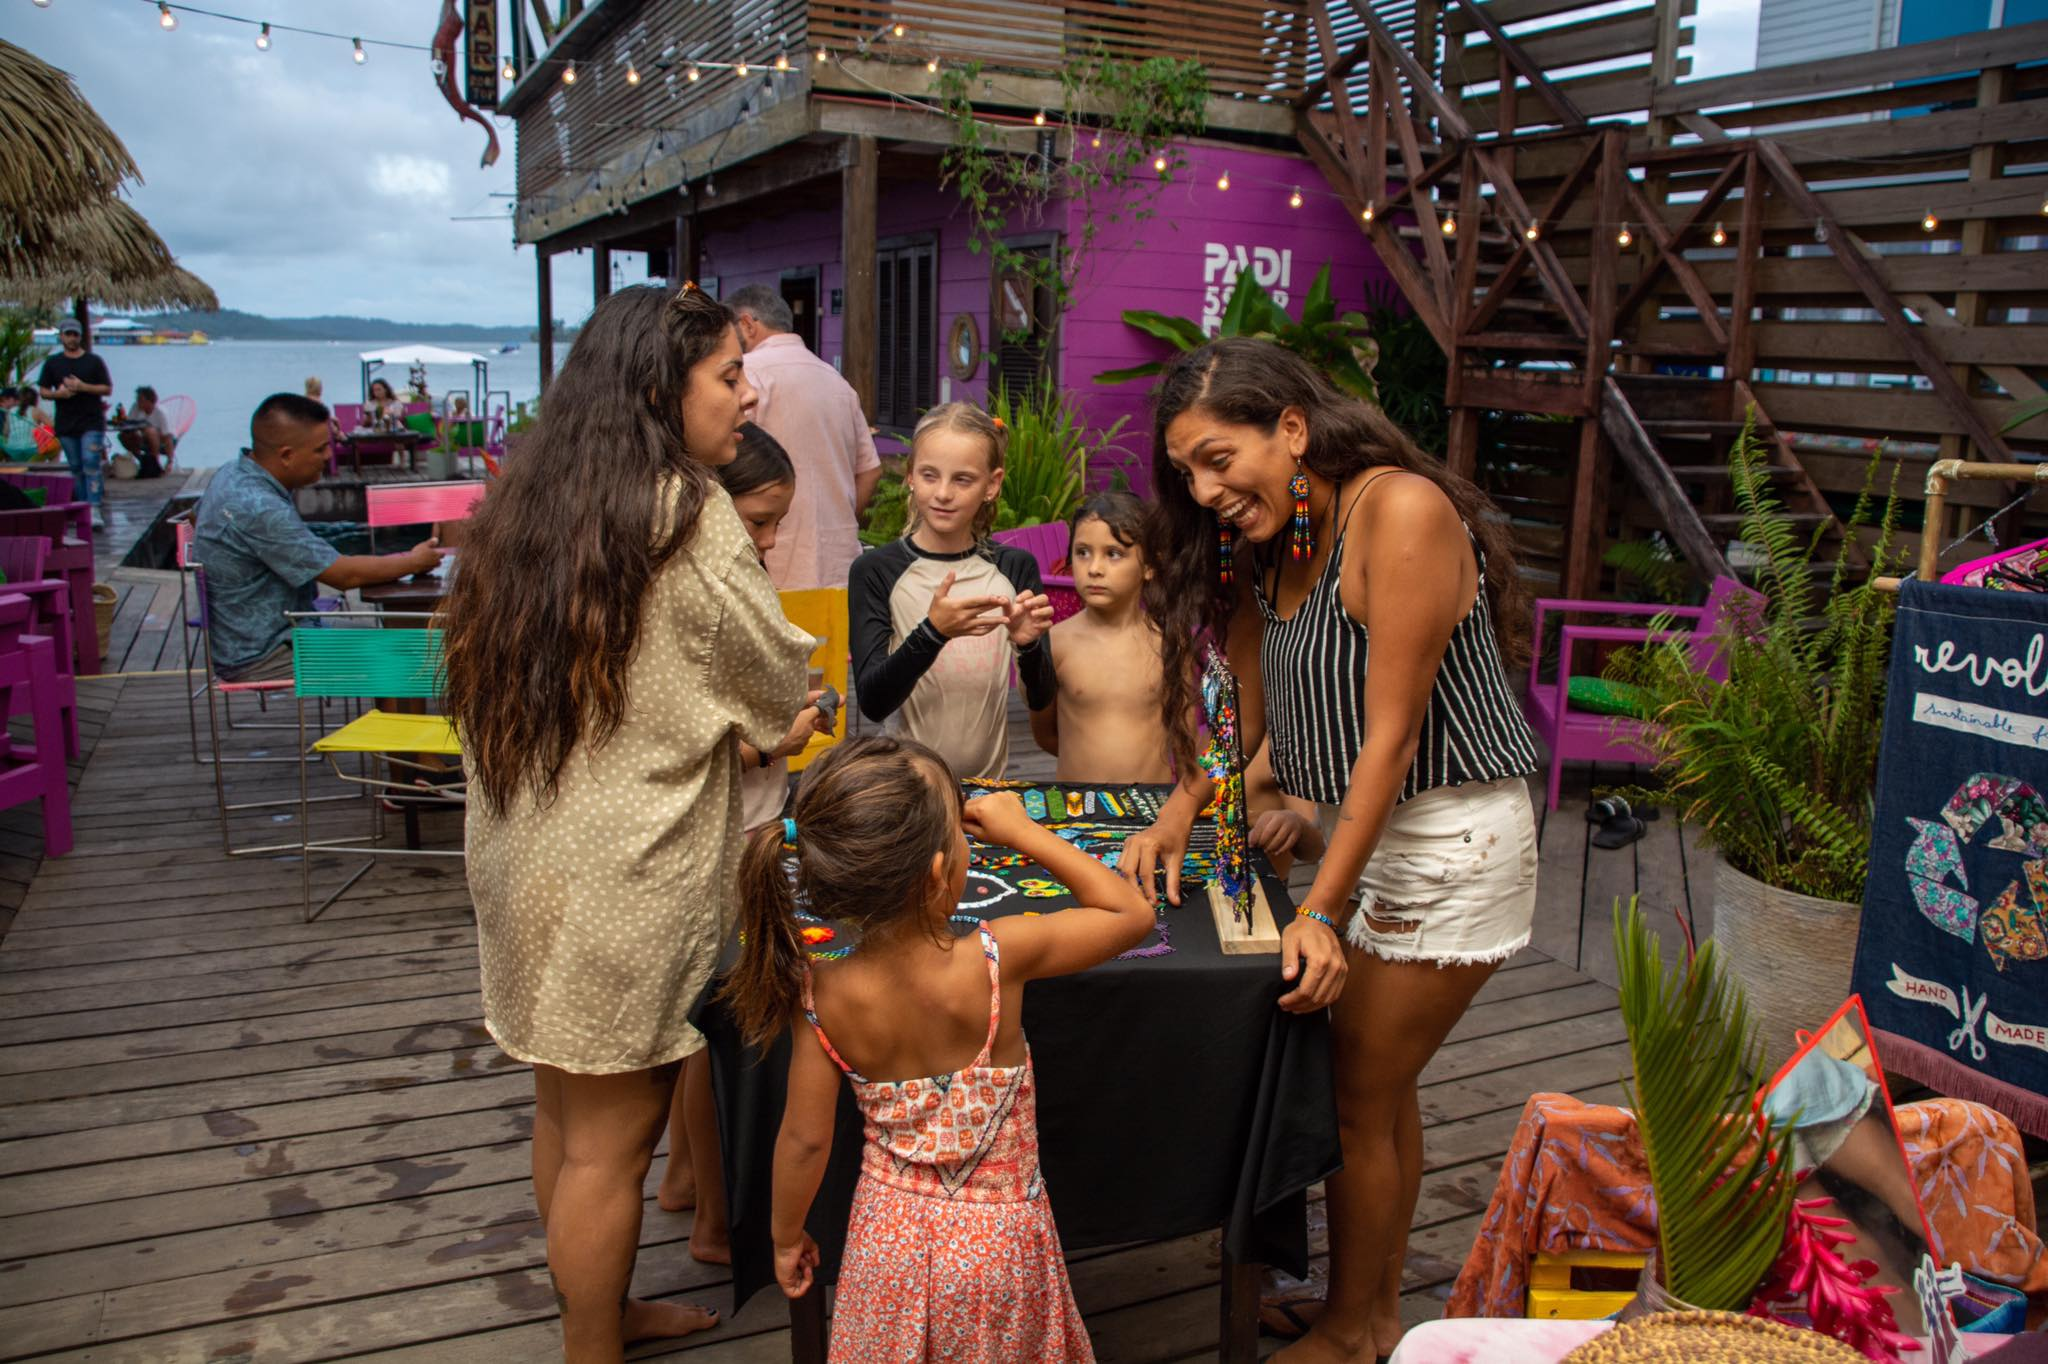 vendors and children smiling at jewelery at La Buguita Ocean Lounge during their friday market